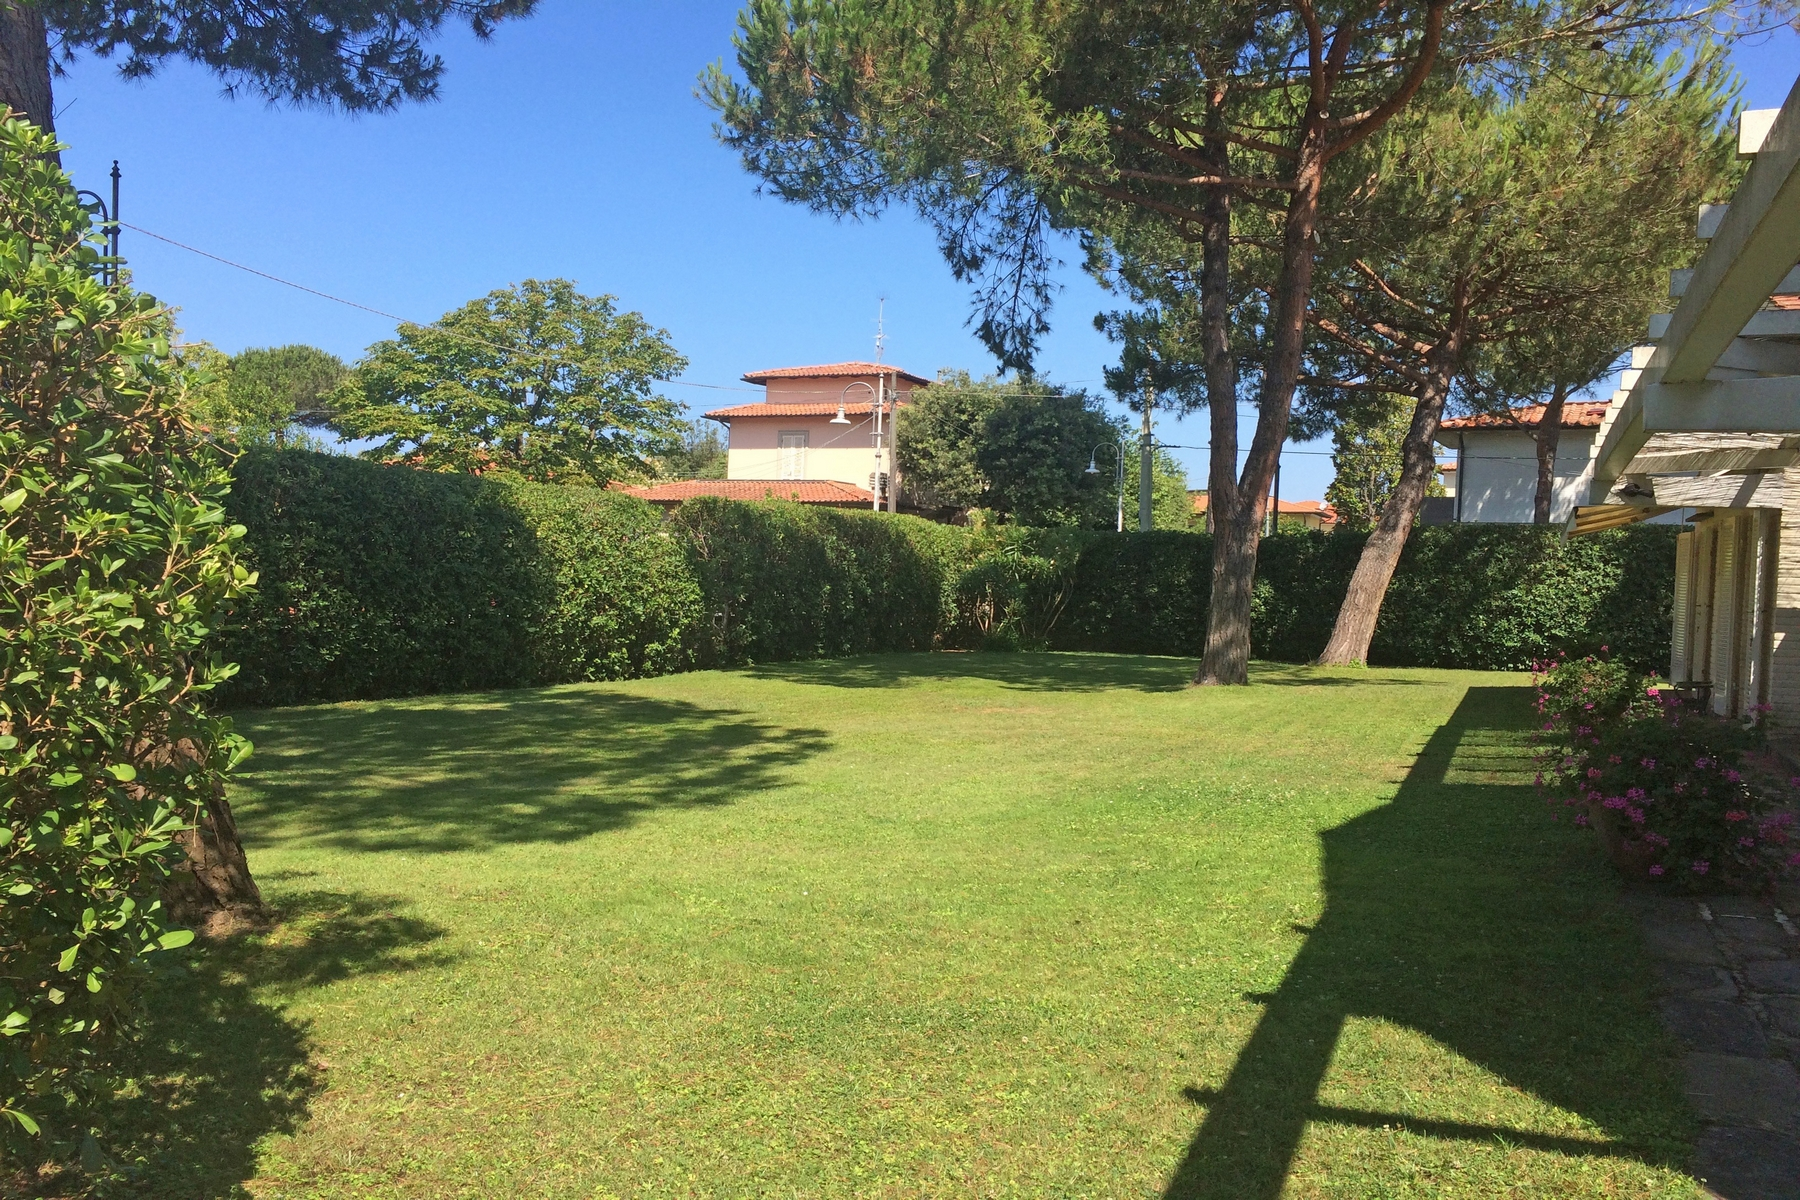 Additional photo for property listing at Charming villa with garden near the sea Le Focette Marina Di Pietrasanta, Lucca 55045 Italie